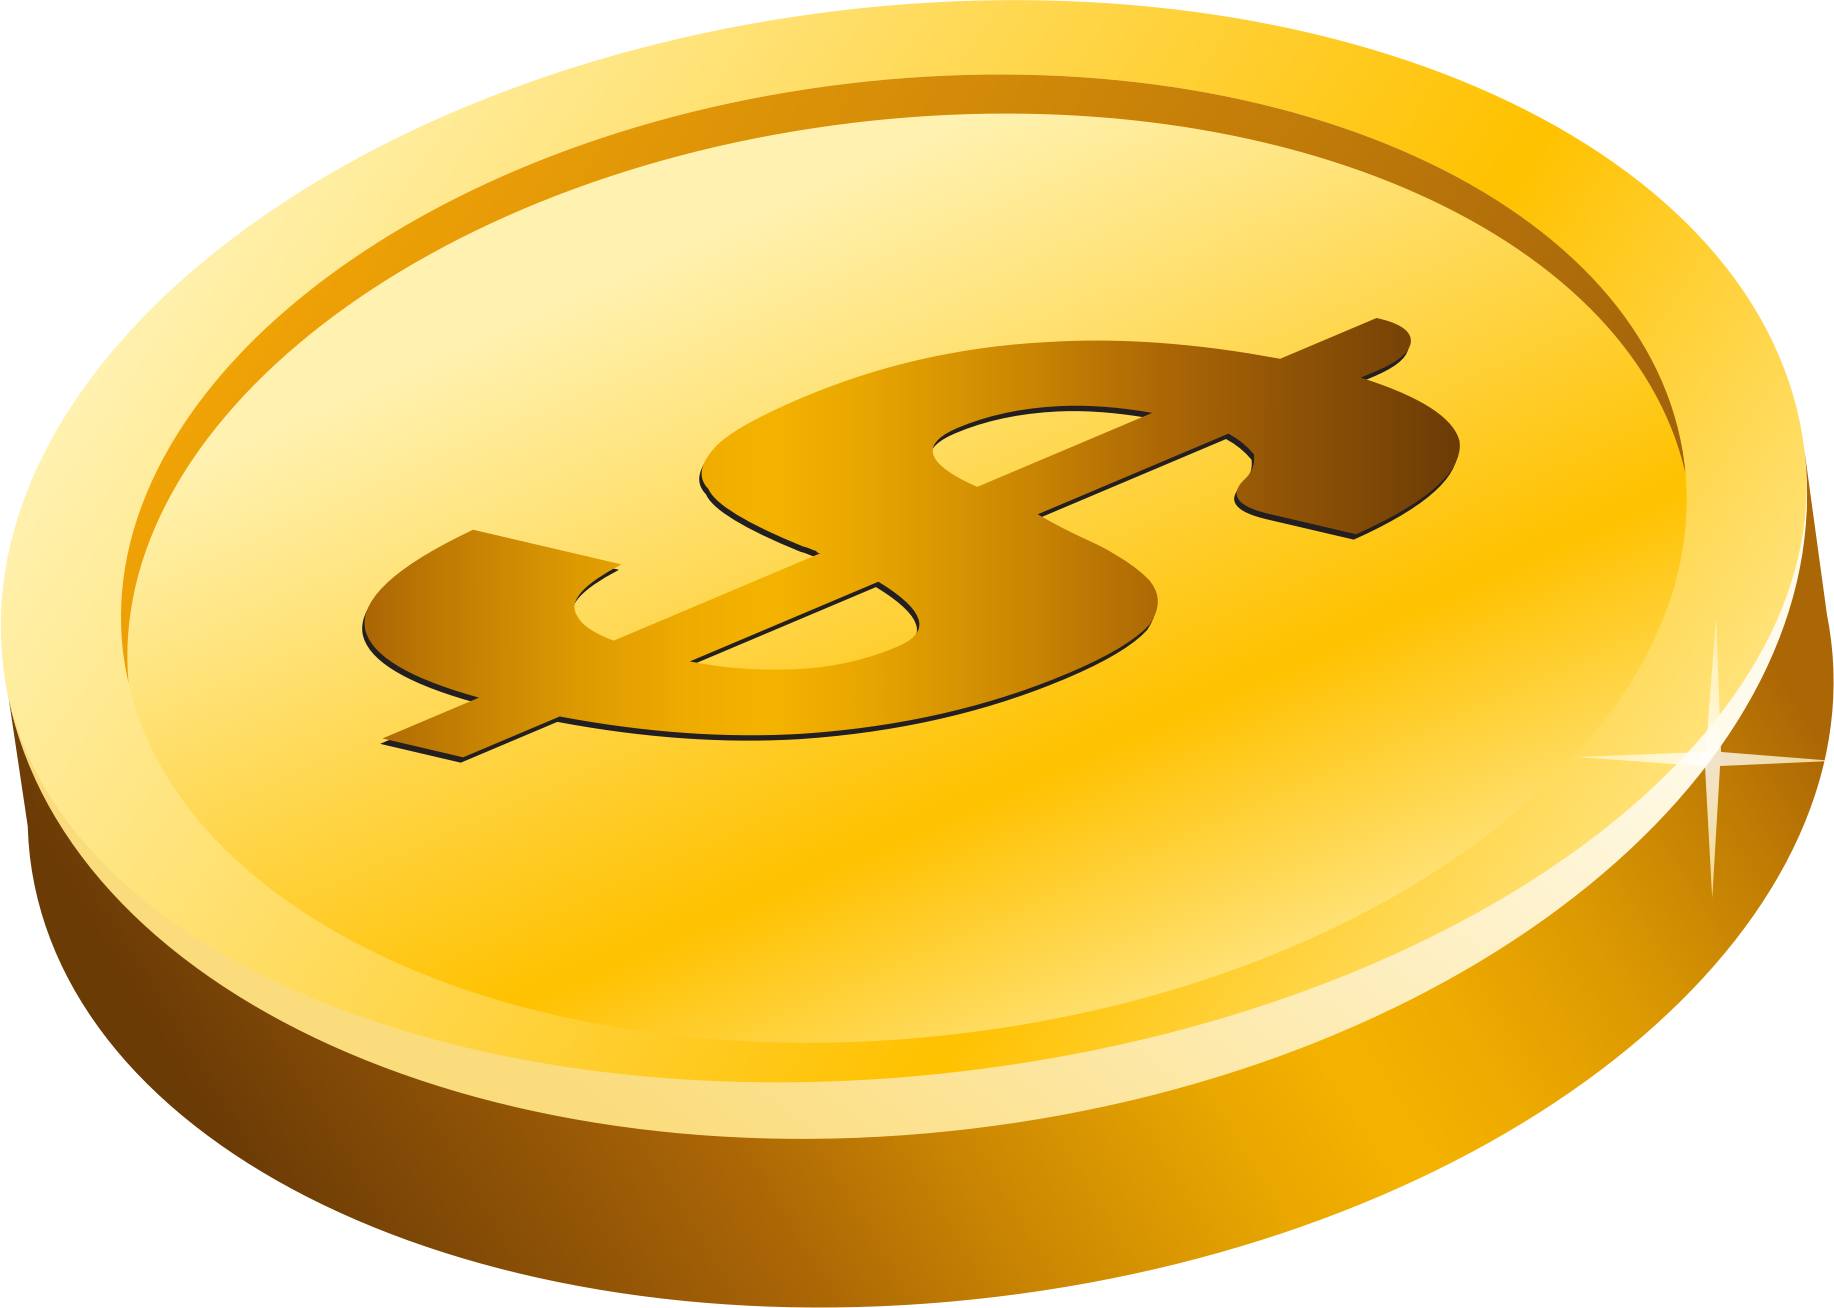 Gold clipart transparent background. Dollar coin big image